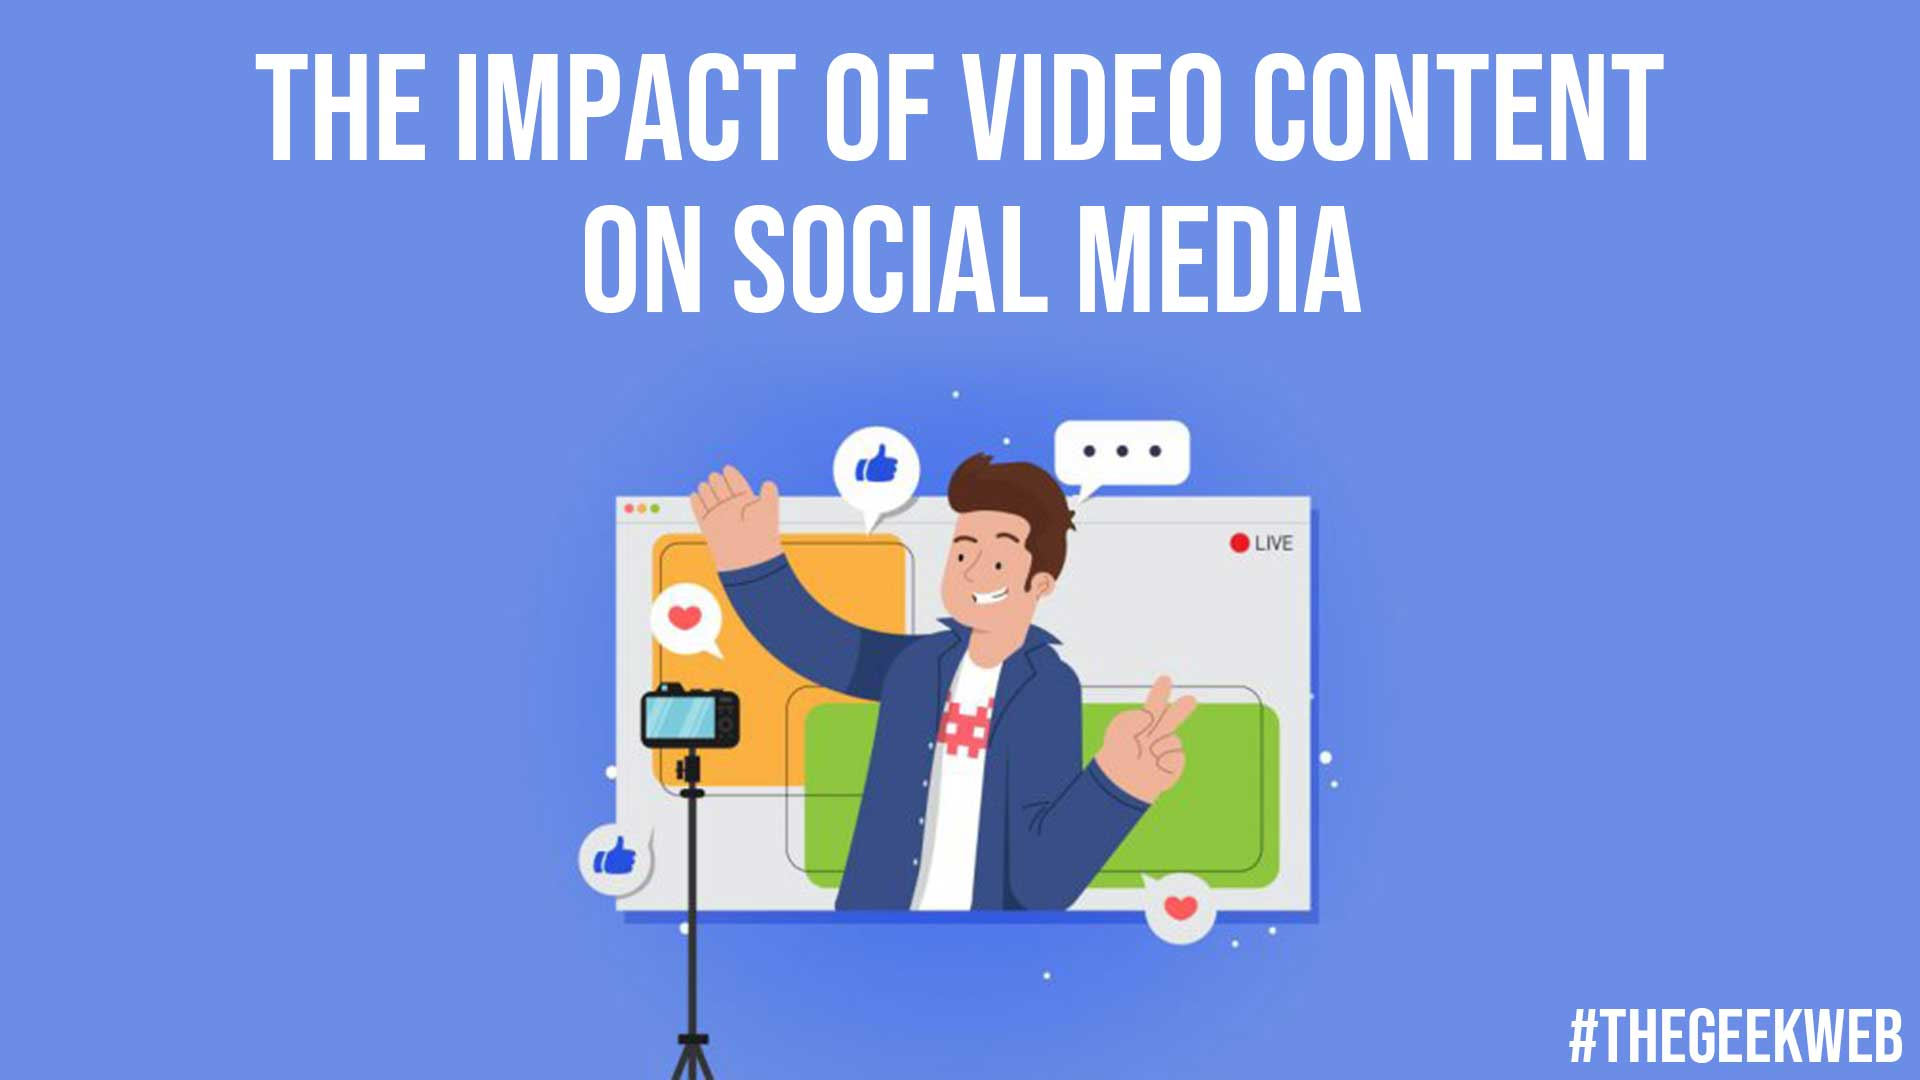 The Impact of Video Content on Social Media